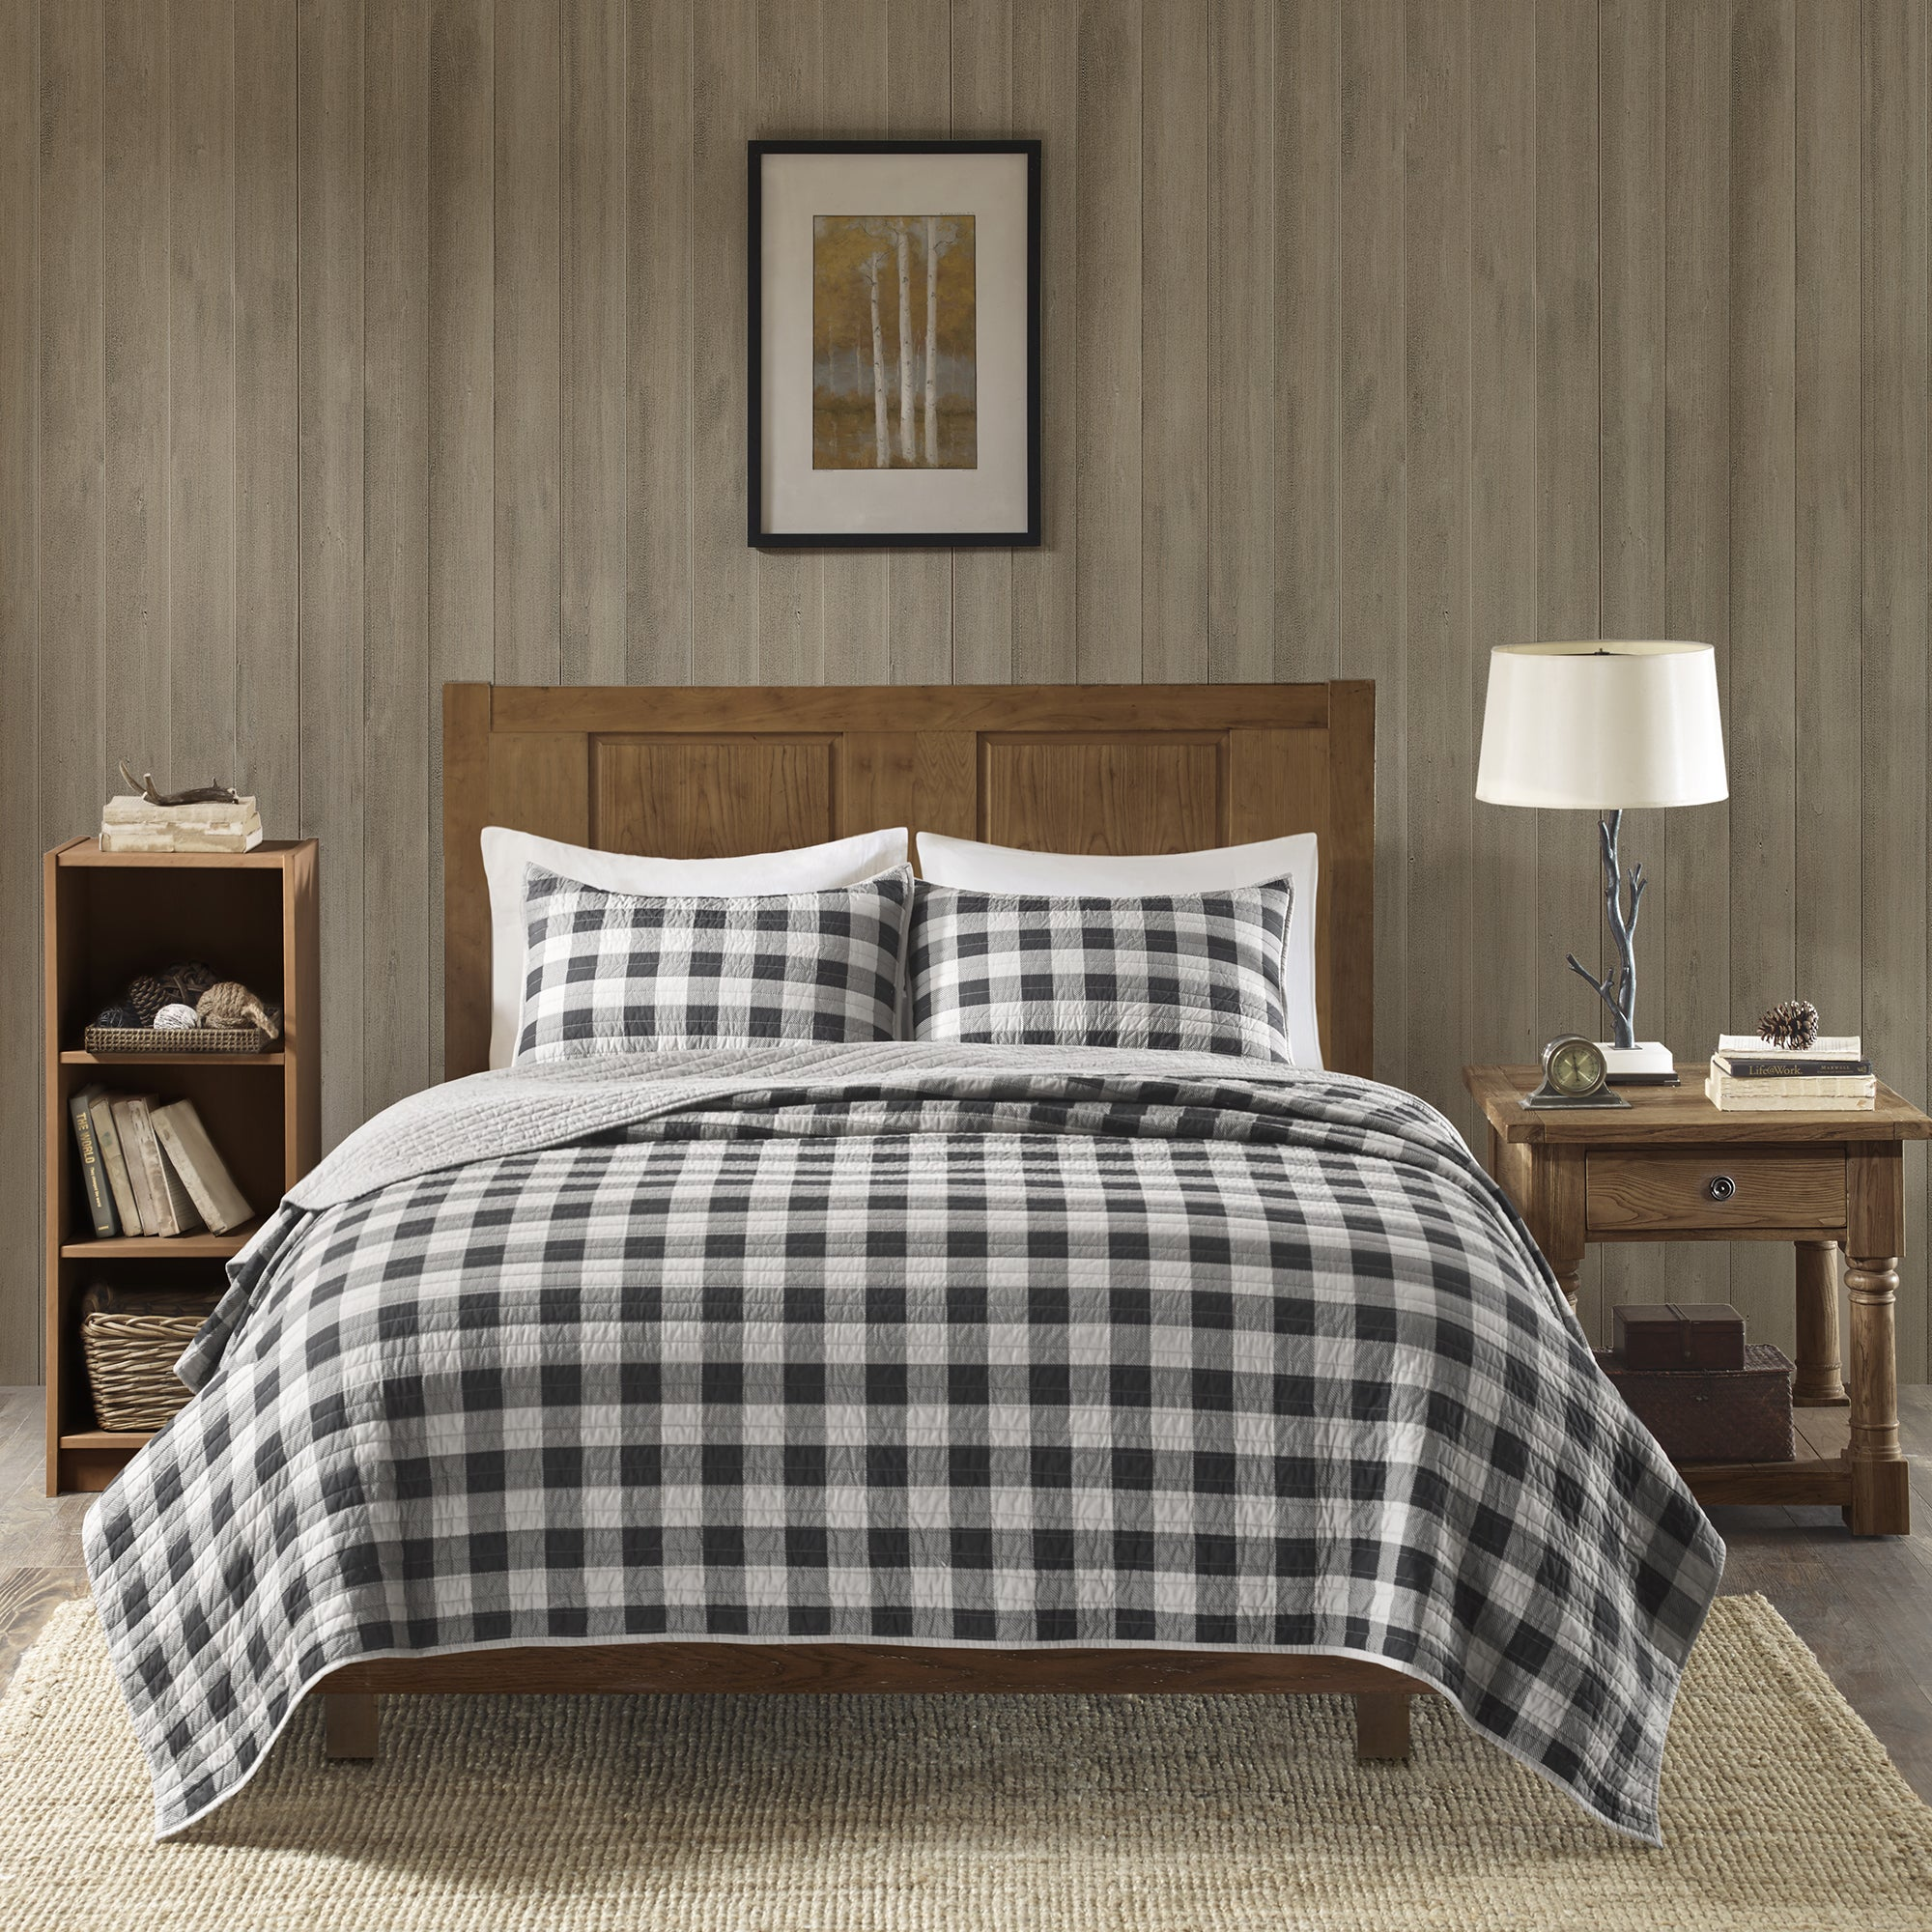 check brands vhc s annie fashions paul home collection buffalo comforter bedding colanniebufcheckvhc